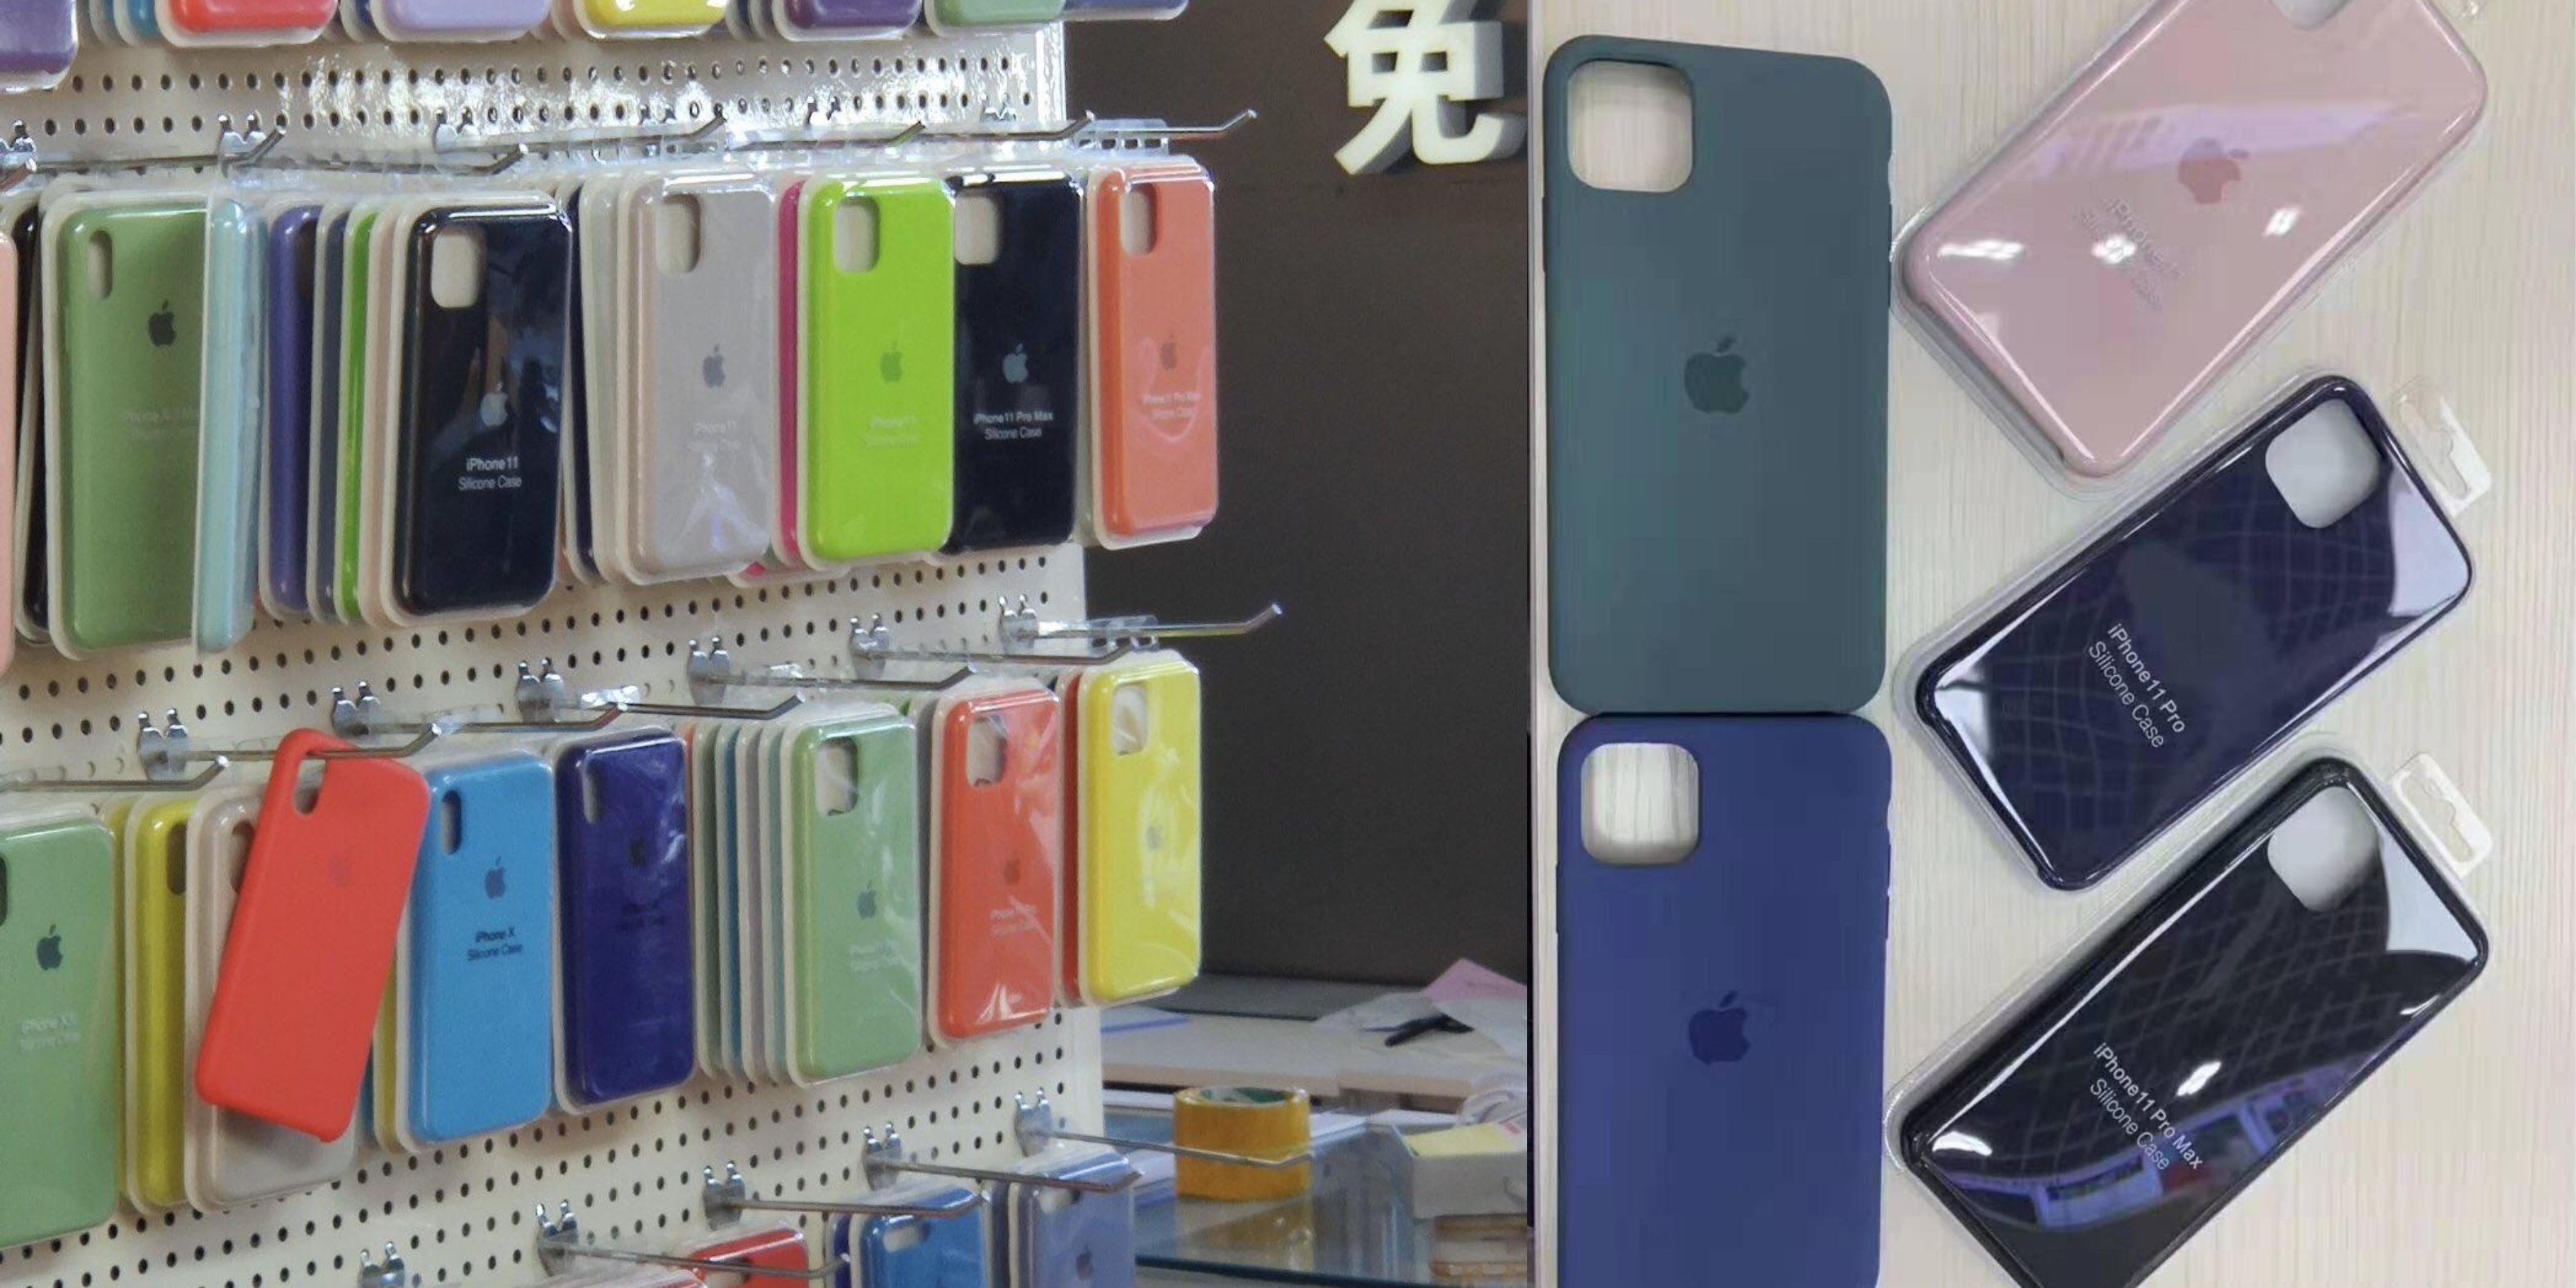 iphone-11-cases.jpg?resize=2500%2C0&quality=82&strip=all&ssl=1